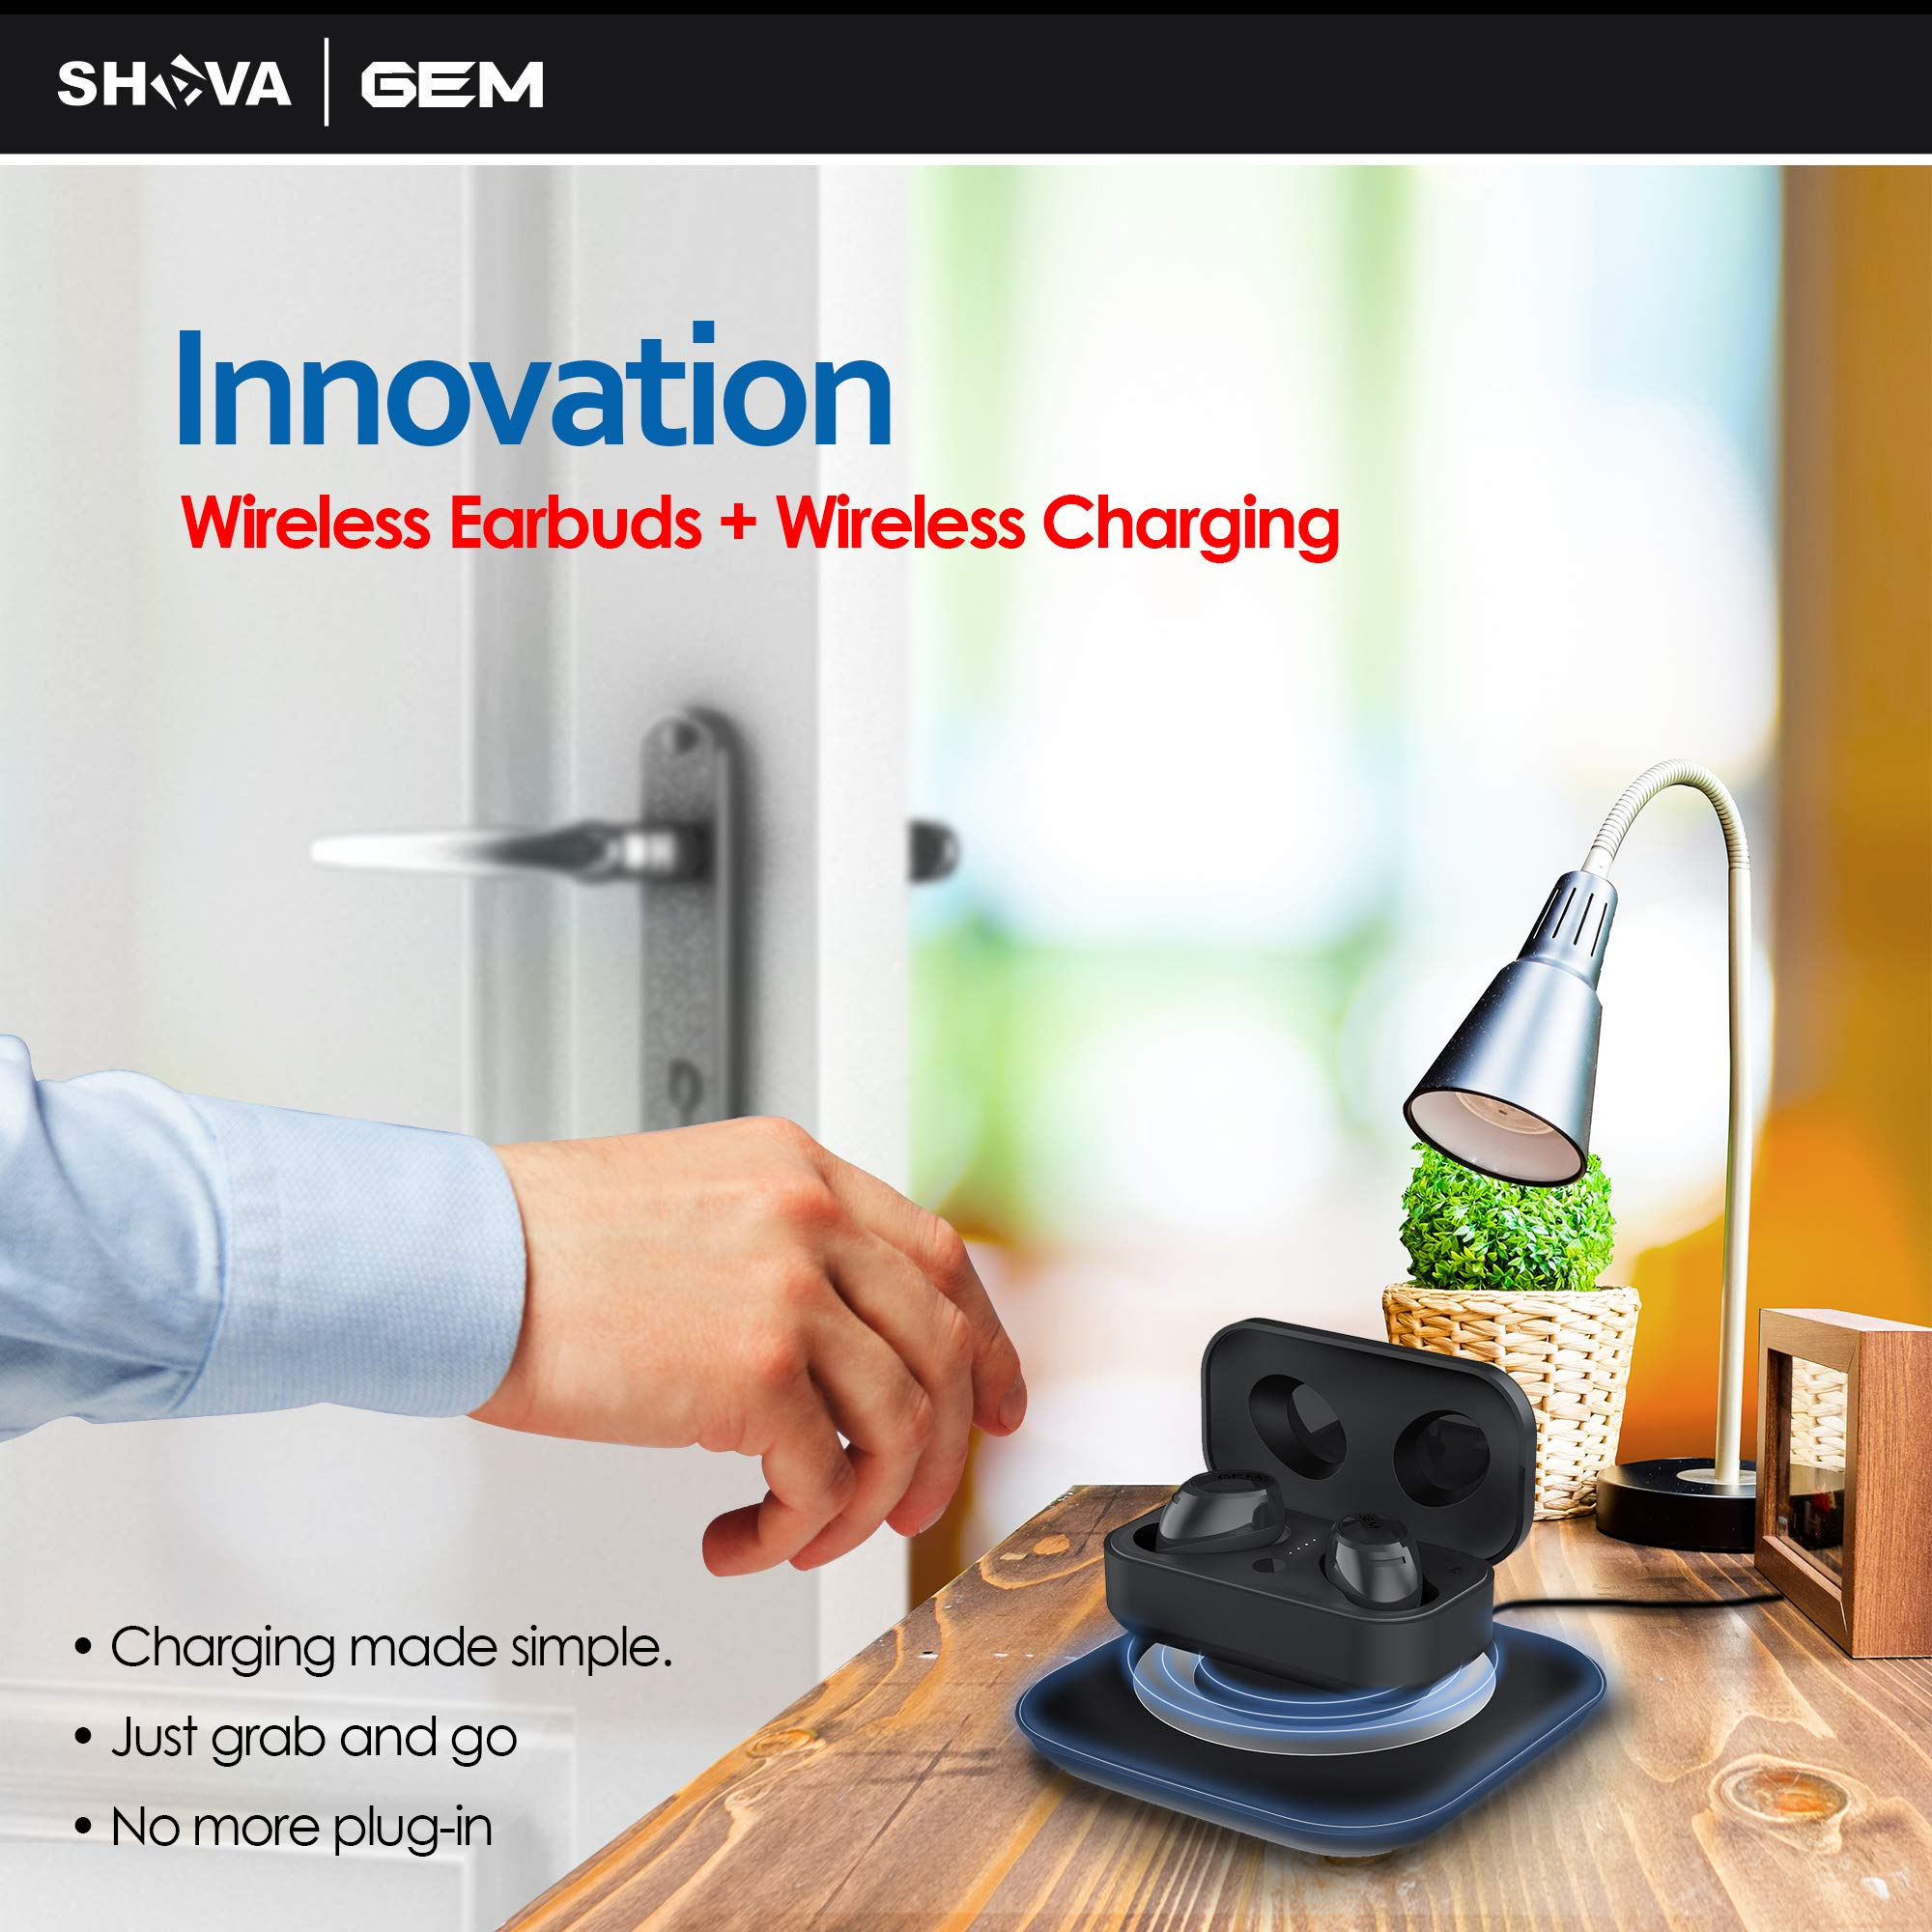 SHAVA GEM Wireless Earbuds, Bluetooth Headphones with Noise Cancelling and Microphone, True Wireless Earbuds with Wireless Charging and 3D Stereo Sound (Wireless Charger Included, Black Color)